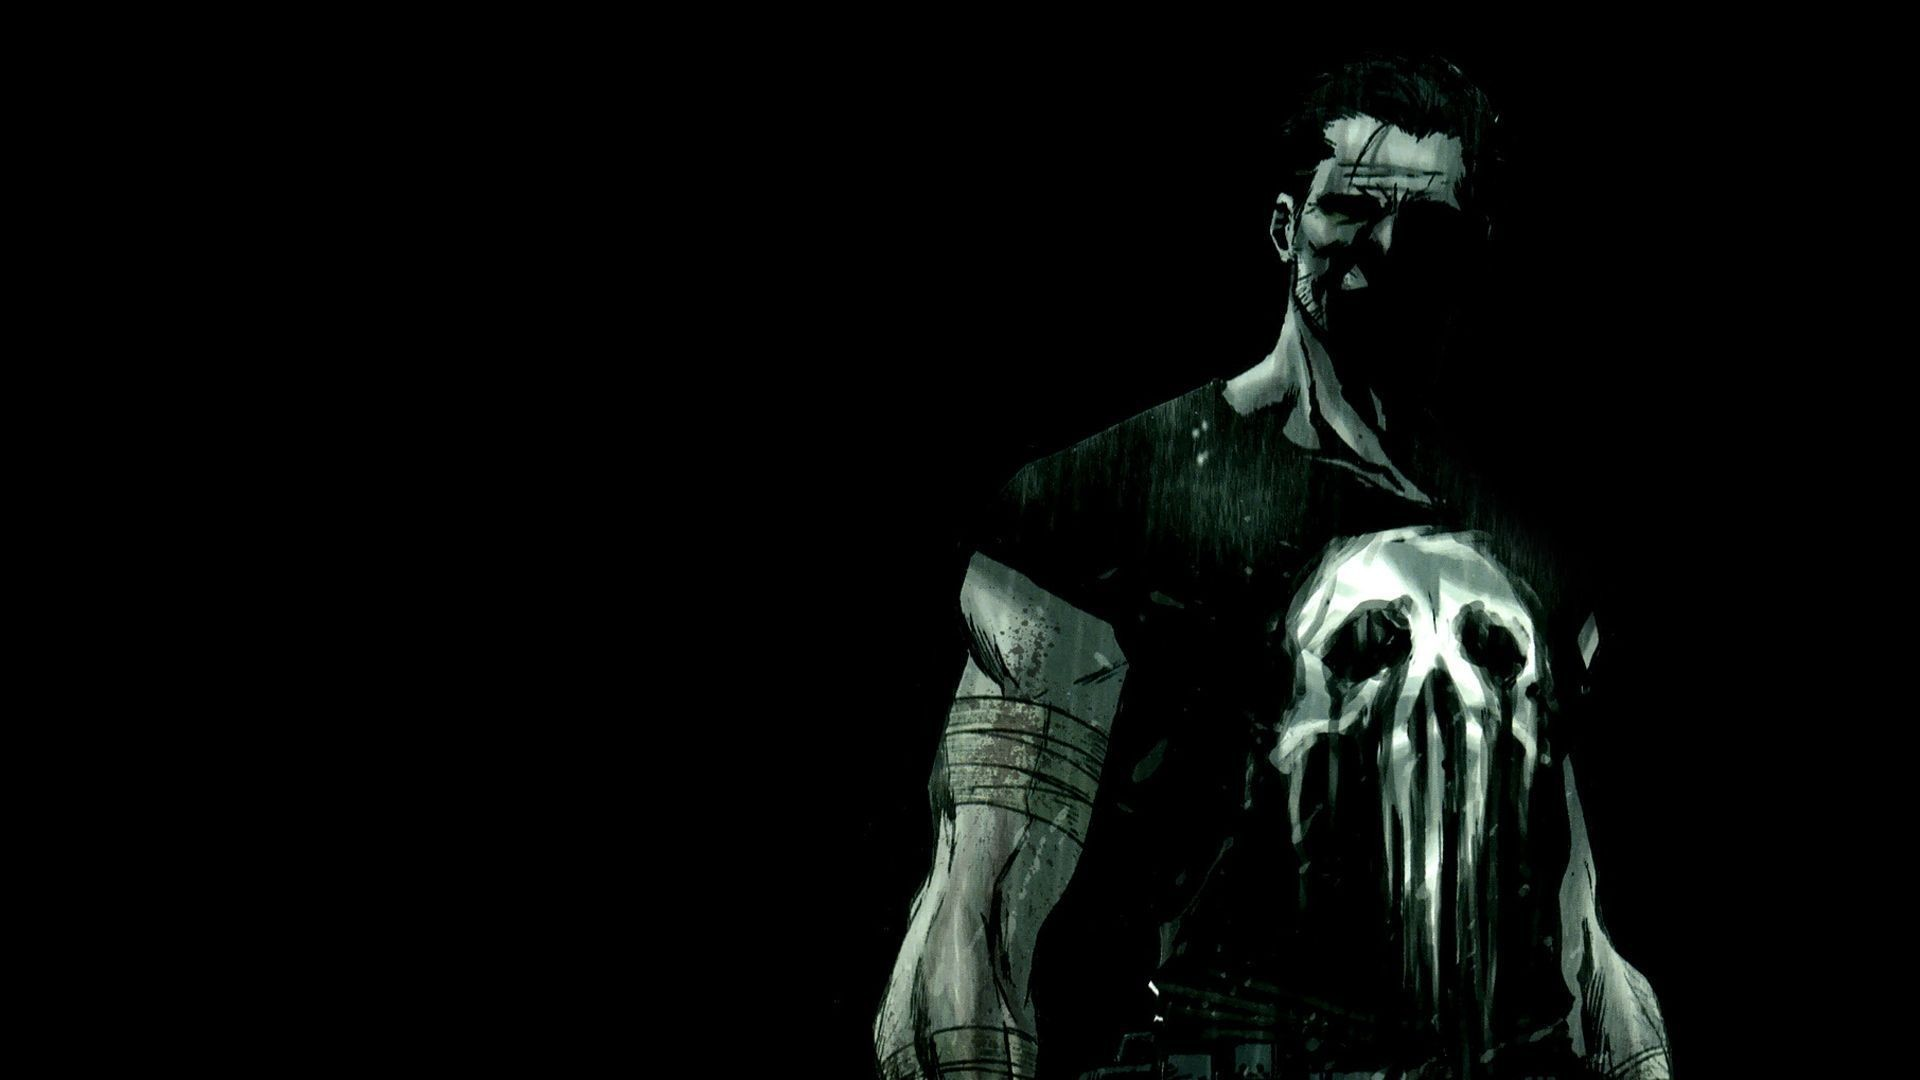 1920x1080 Punisher Wallpapers Desktop Background ...